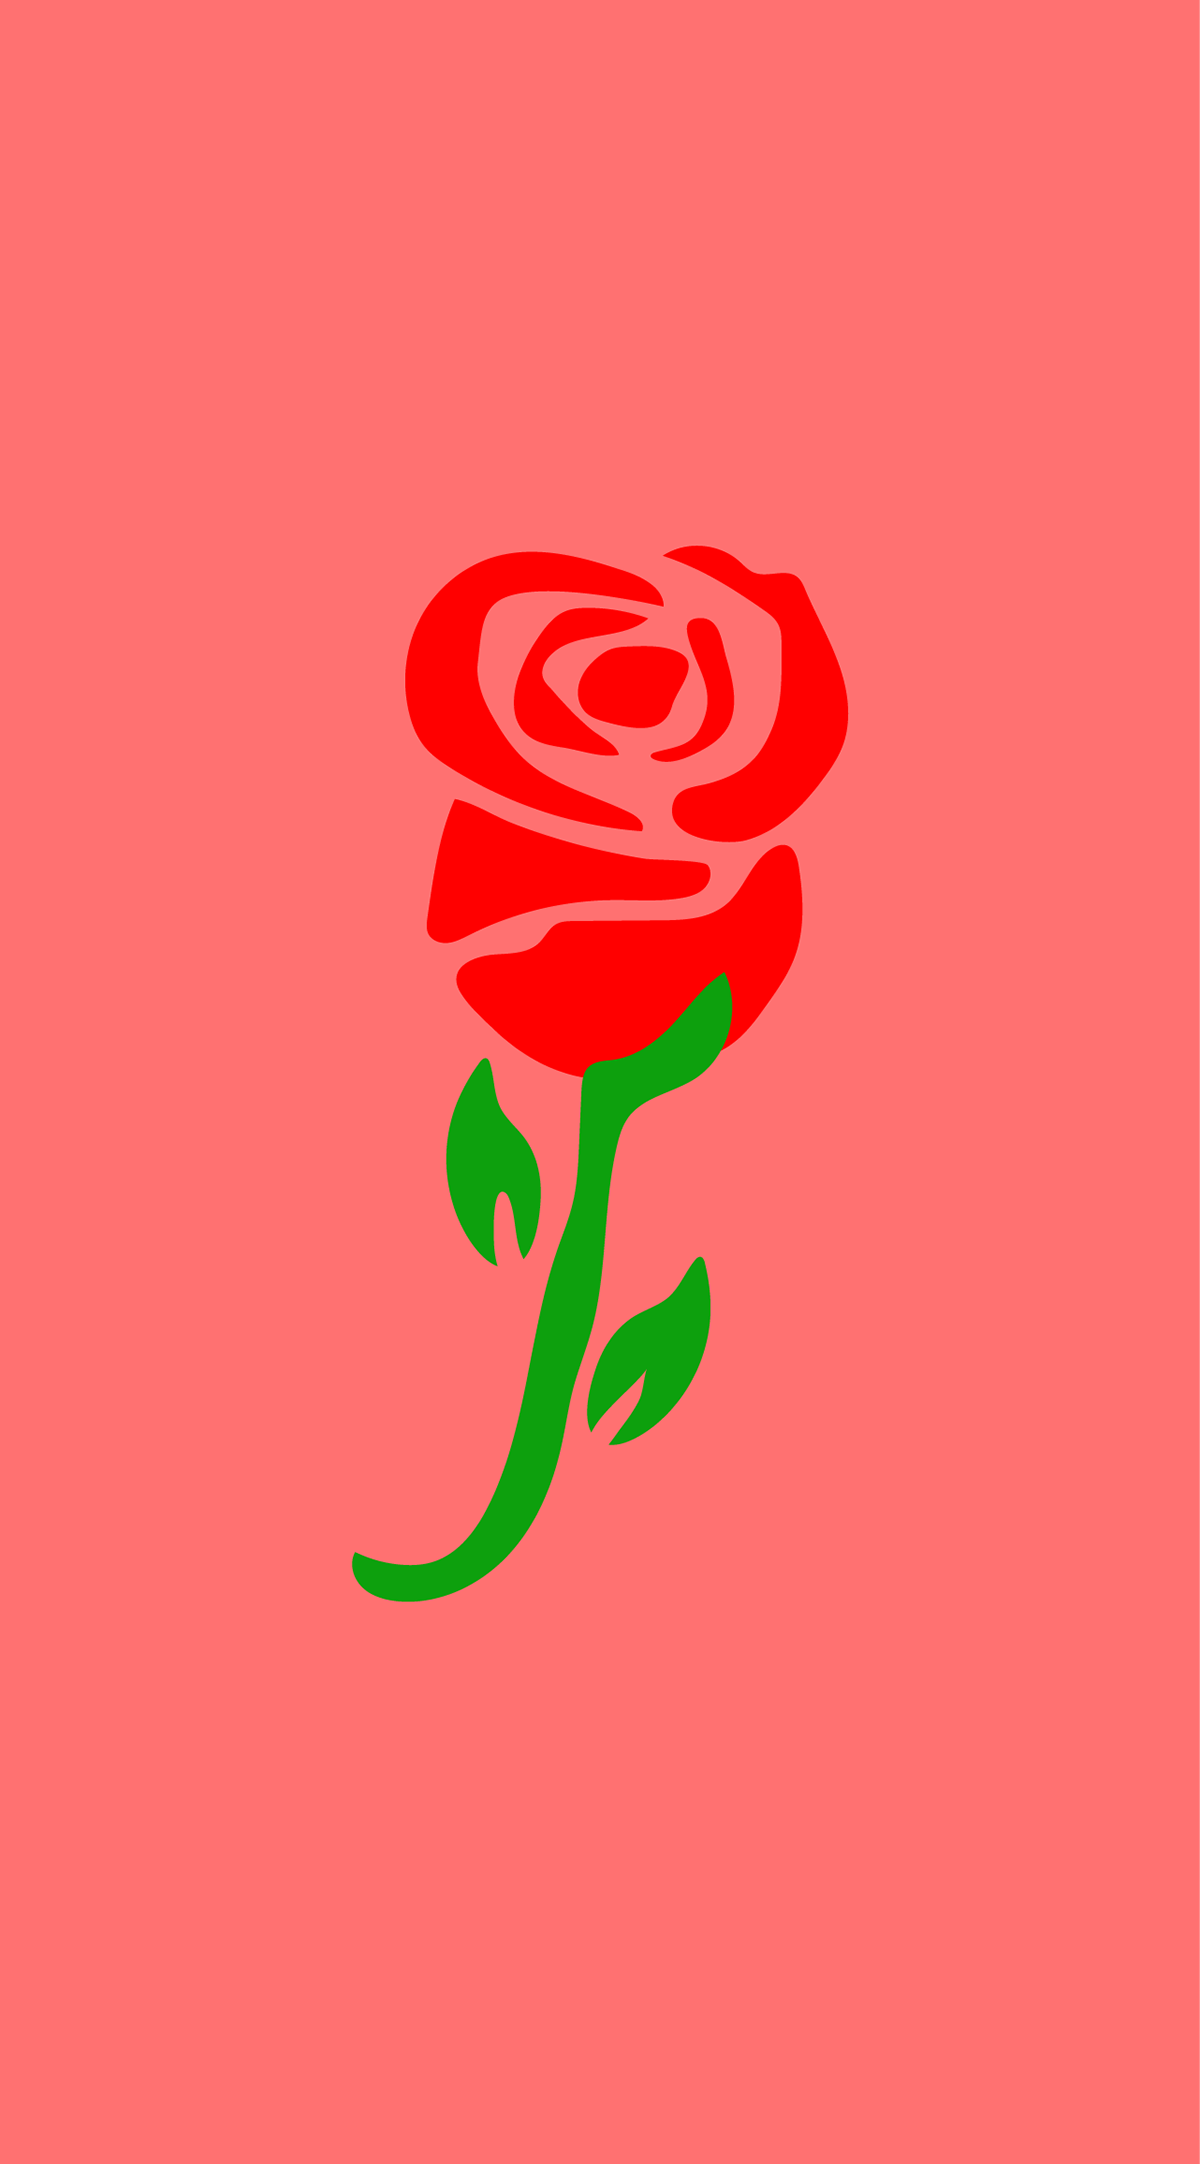 Rose Wallpapers on Behance